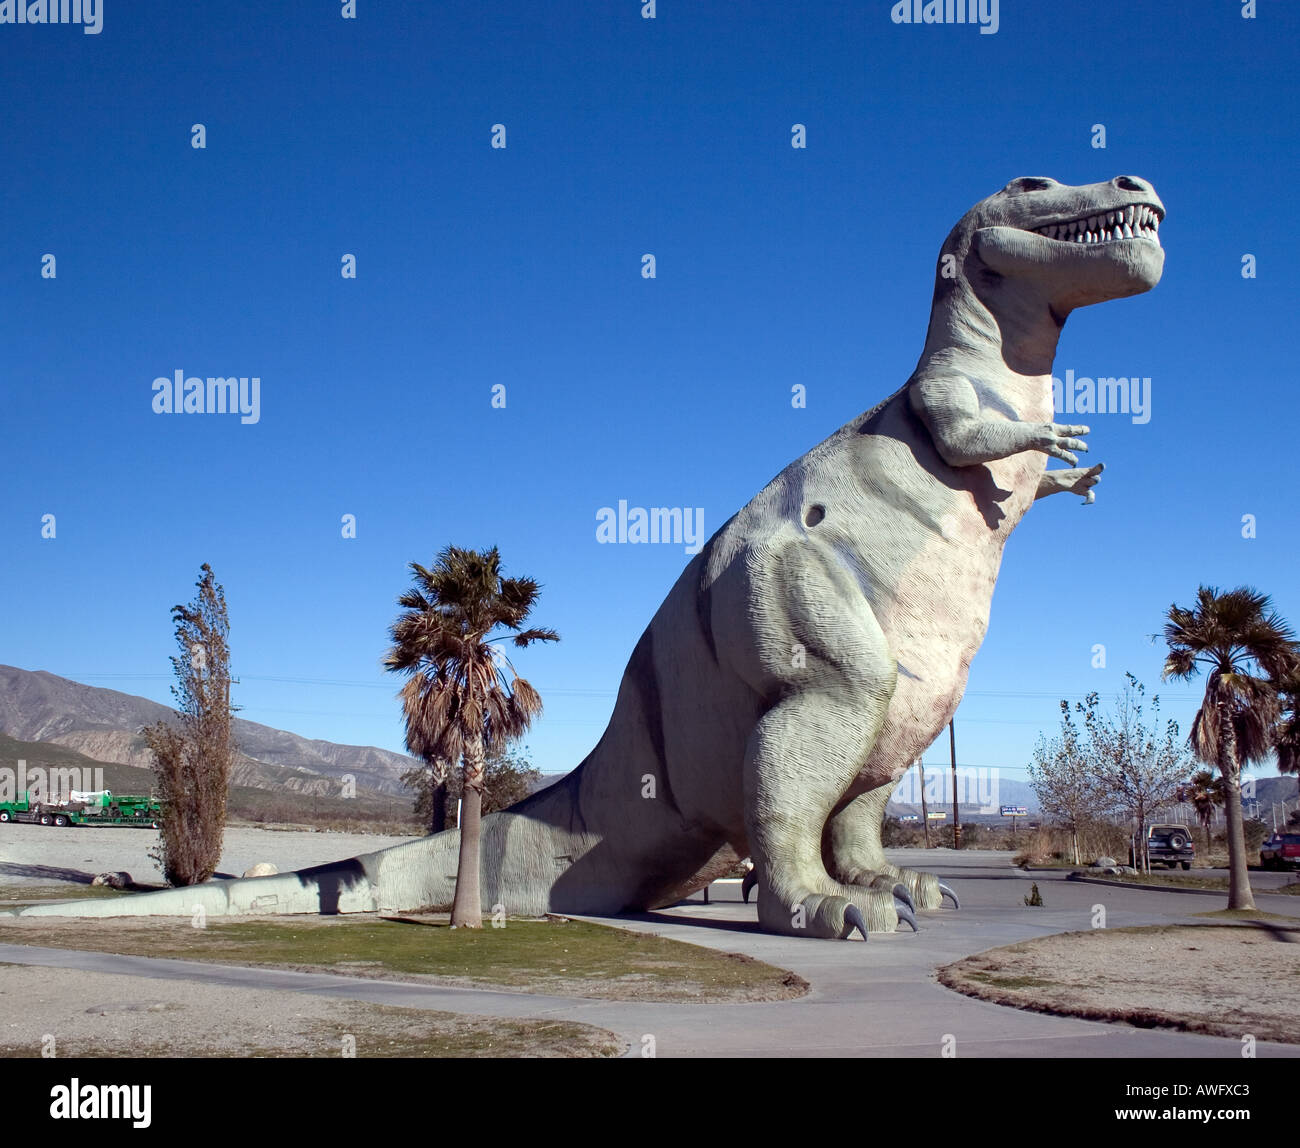 The World s Biggest Dinosaurs are located in Cabazon California west of Palm Springs - Stock Image